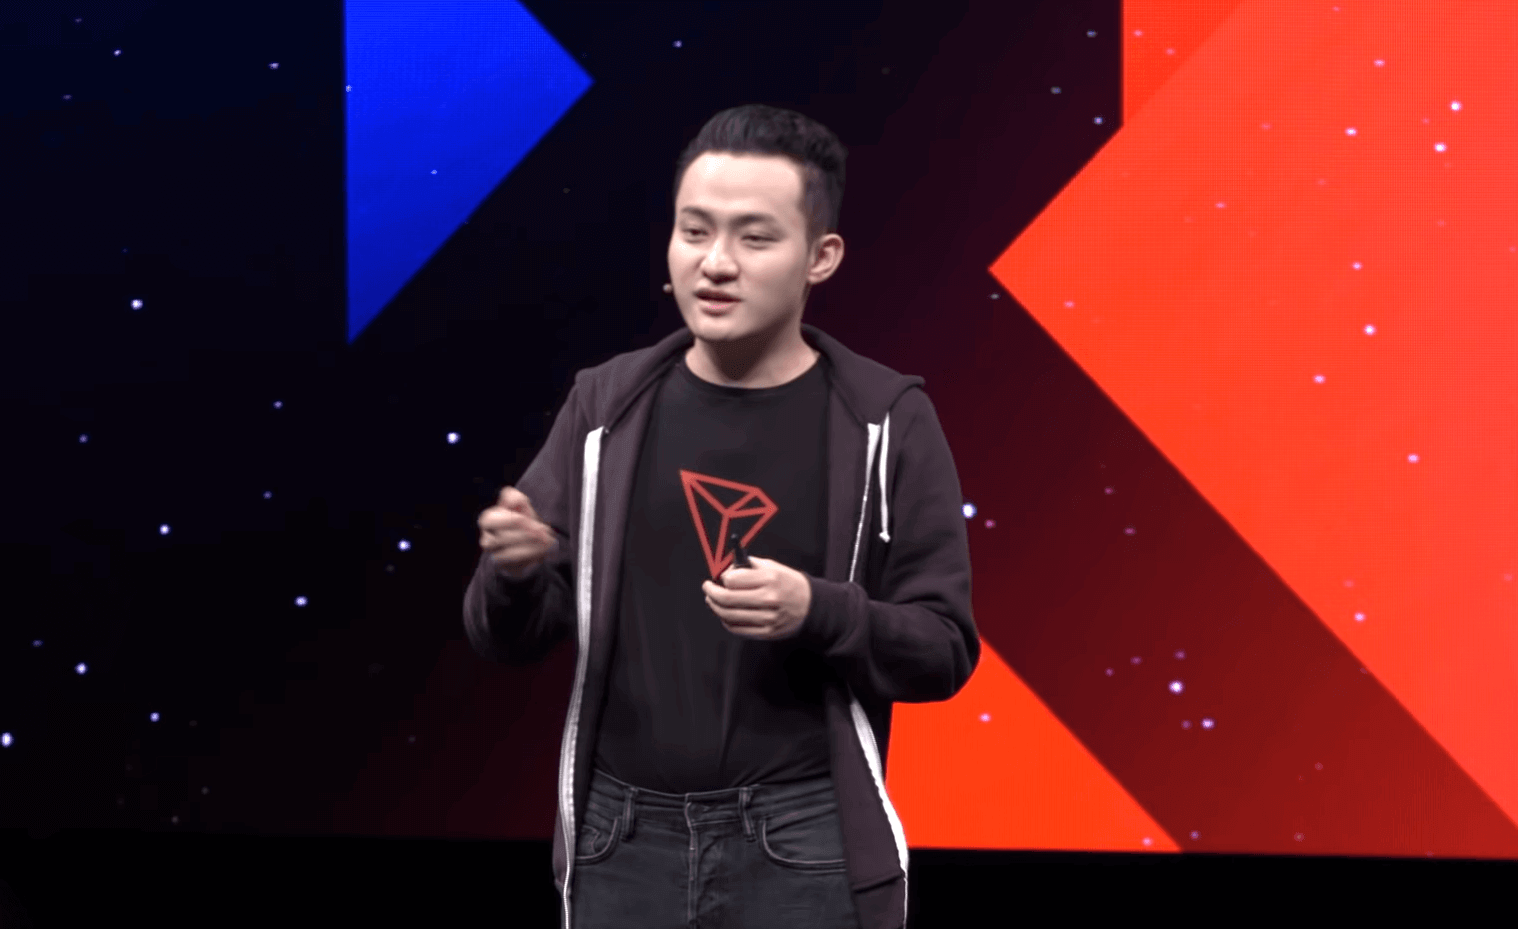 TRON [TRX] Back to Top 10 While BitTorrent Under Top 30 – Justin Sun Hit Milestone